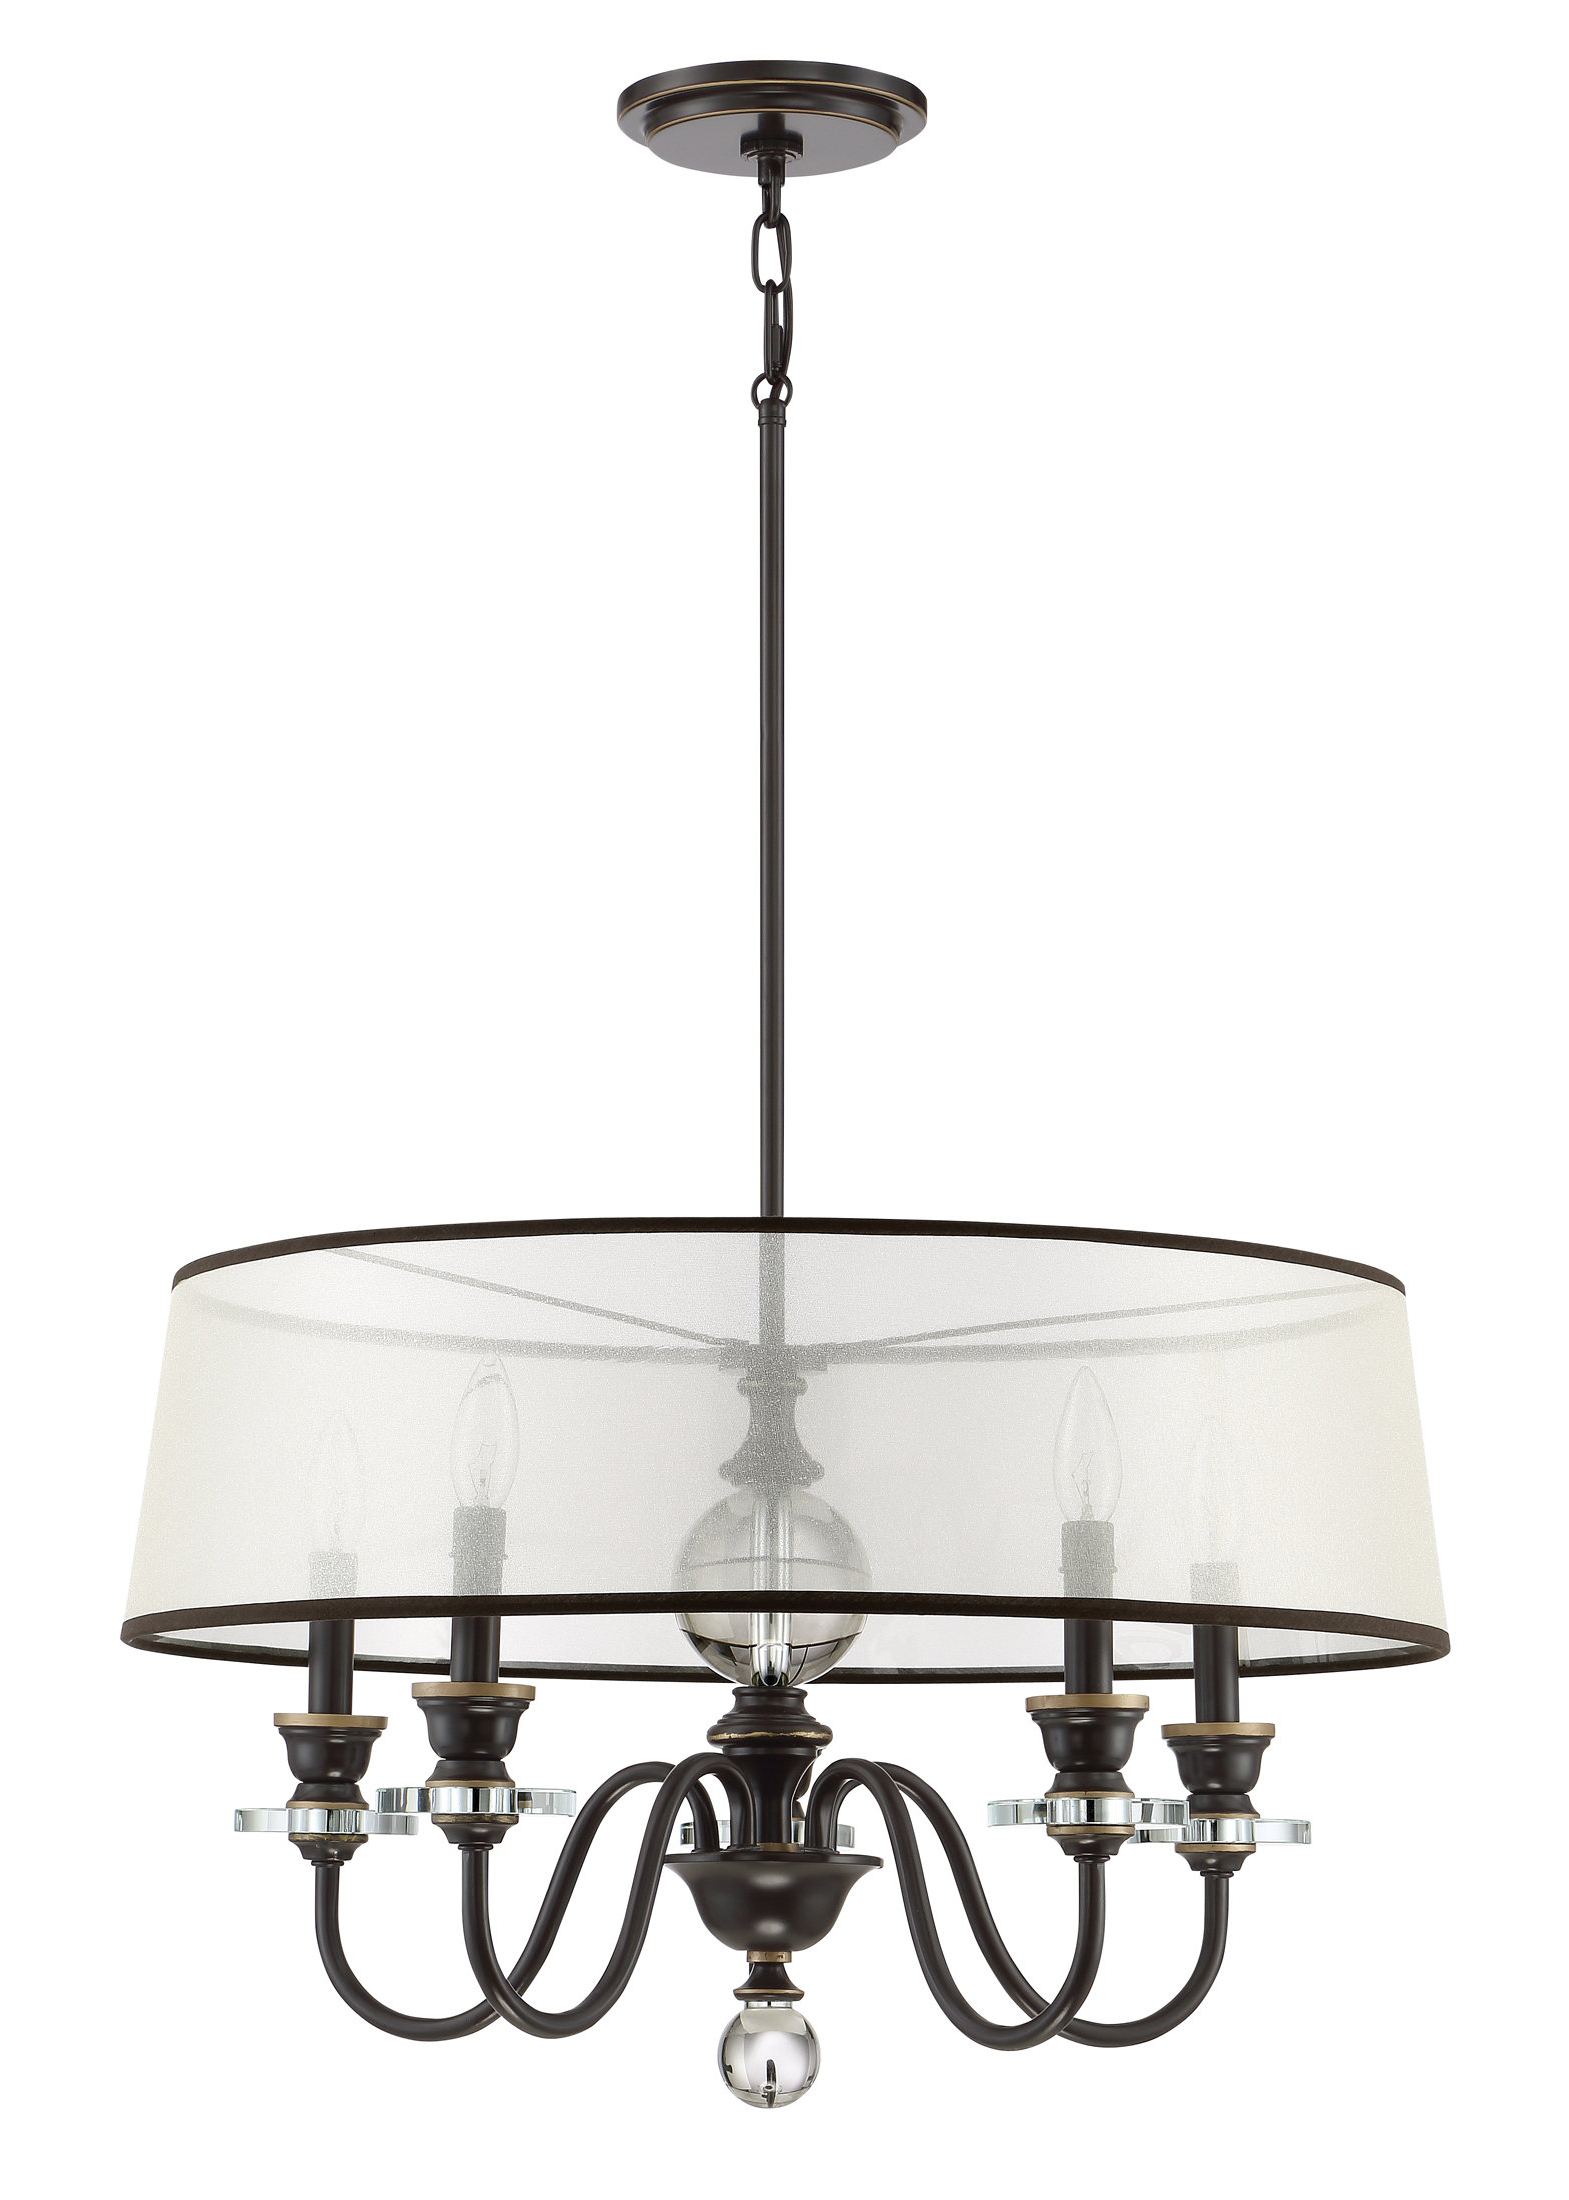 Seagraves 5 Light Drum Chandelier Throughout Current Burton 5 Light Drum Chandeliers (Gallery 12 of 20)